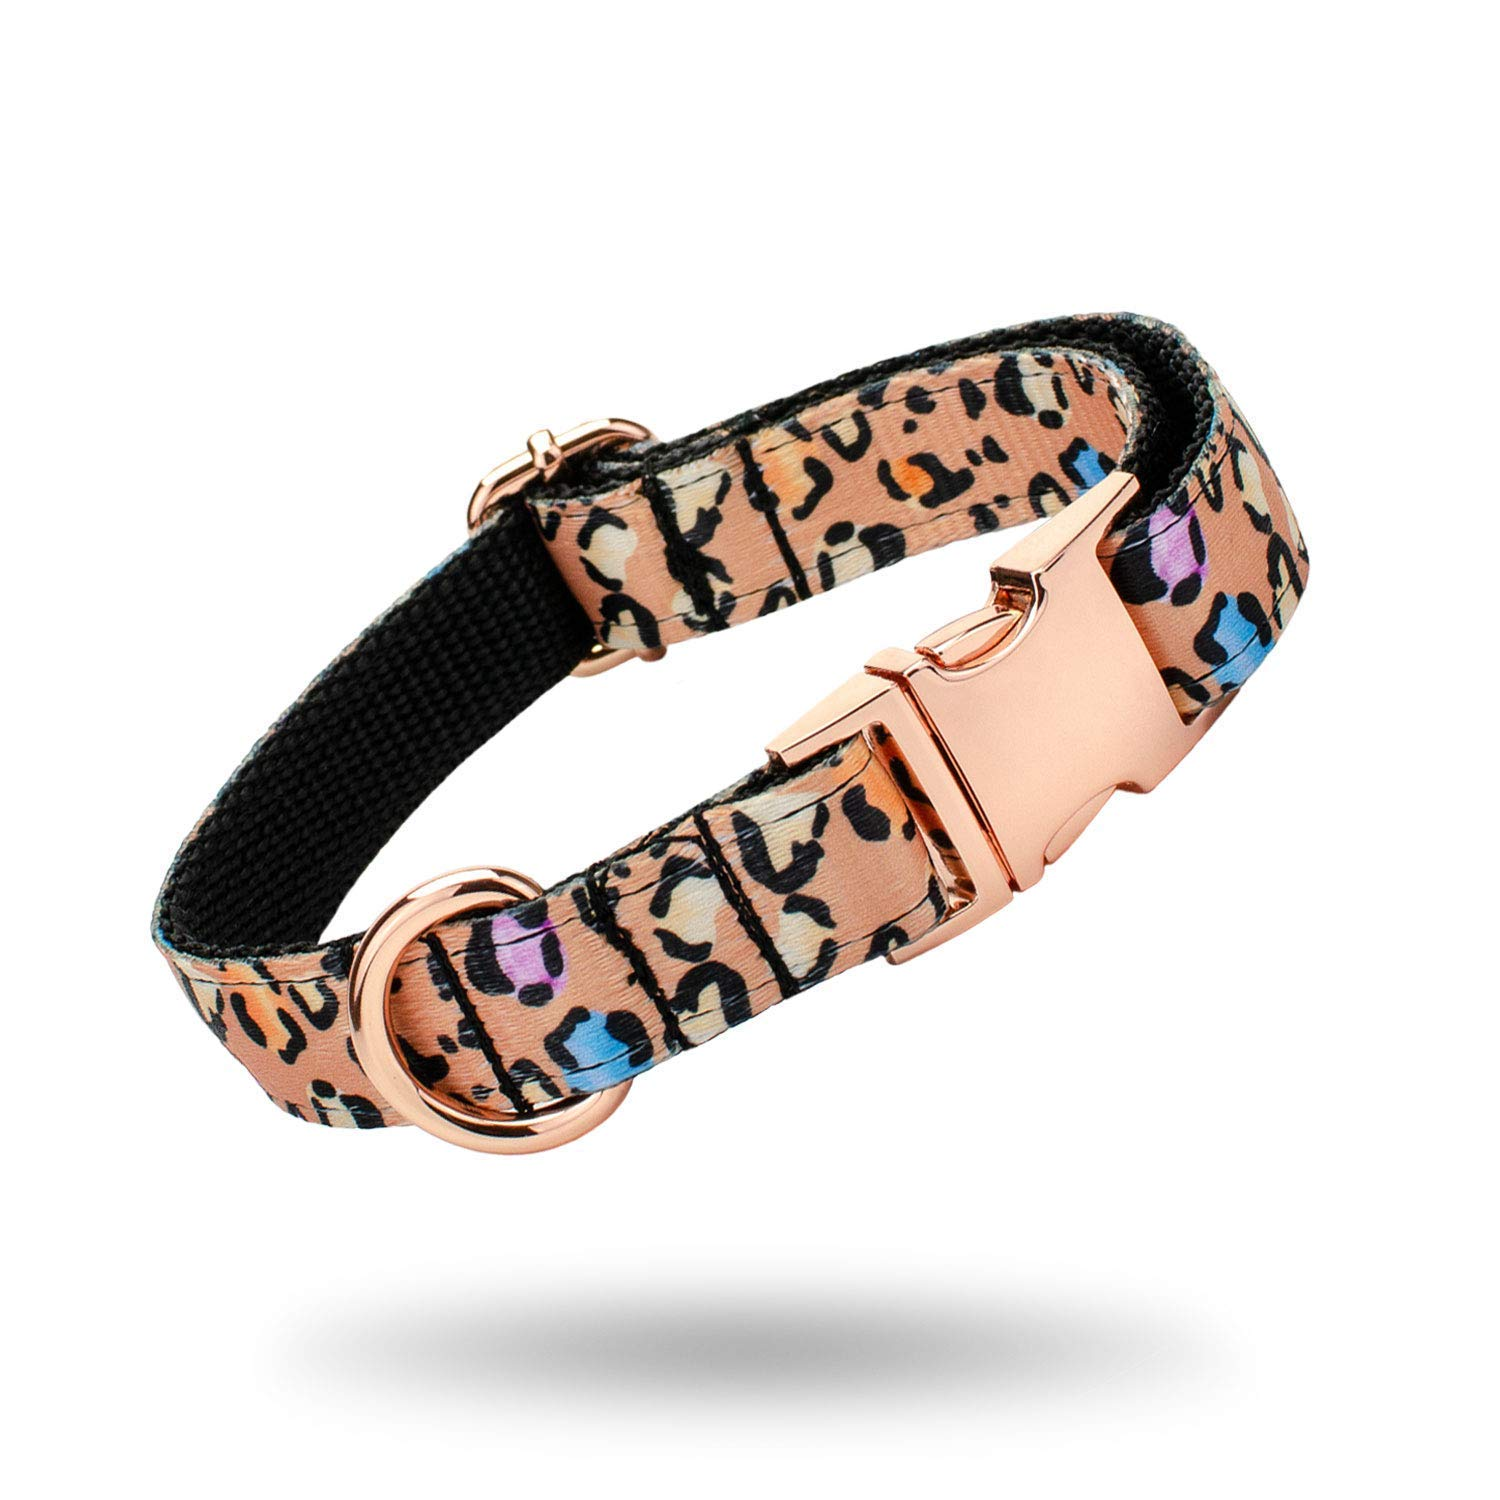 Elegant Beige Leopard Print Dog Collar and Leash Set, Adjustable with Rose Gold Metal Quick Release Buckle - Handmade Pet Collars for X-Small, Medium, Large Dogs